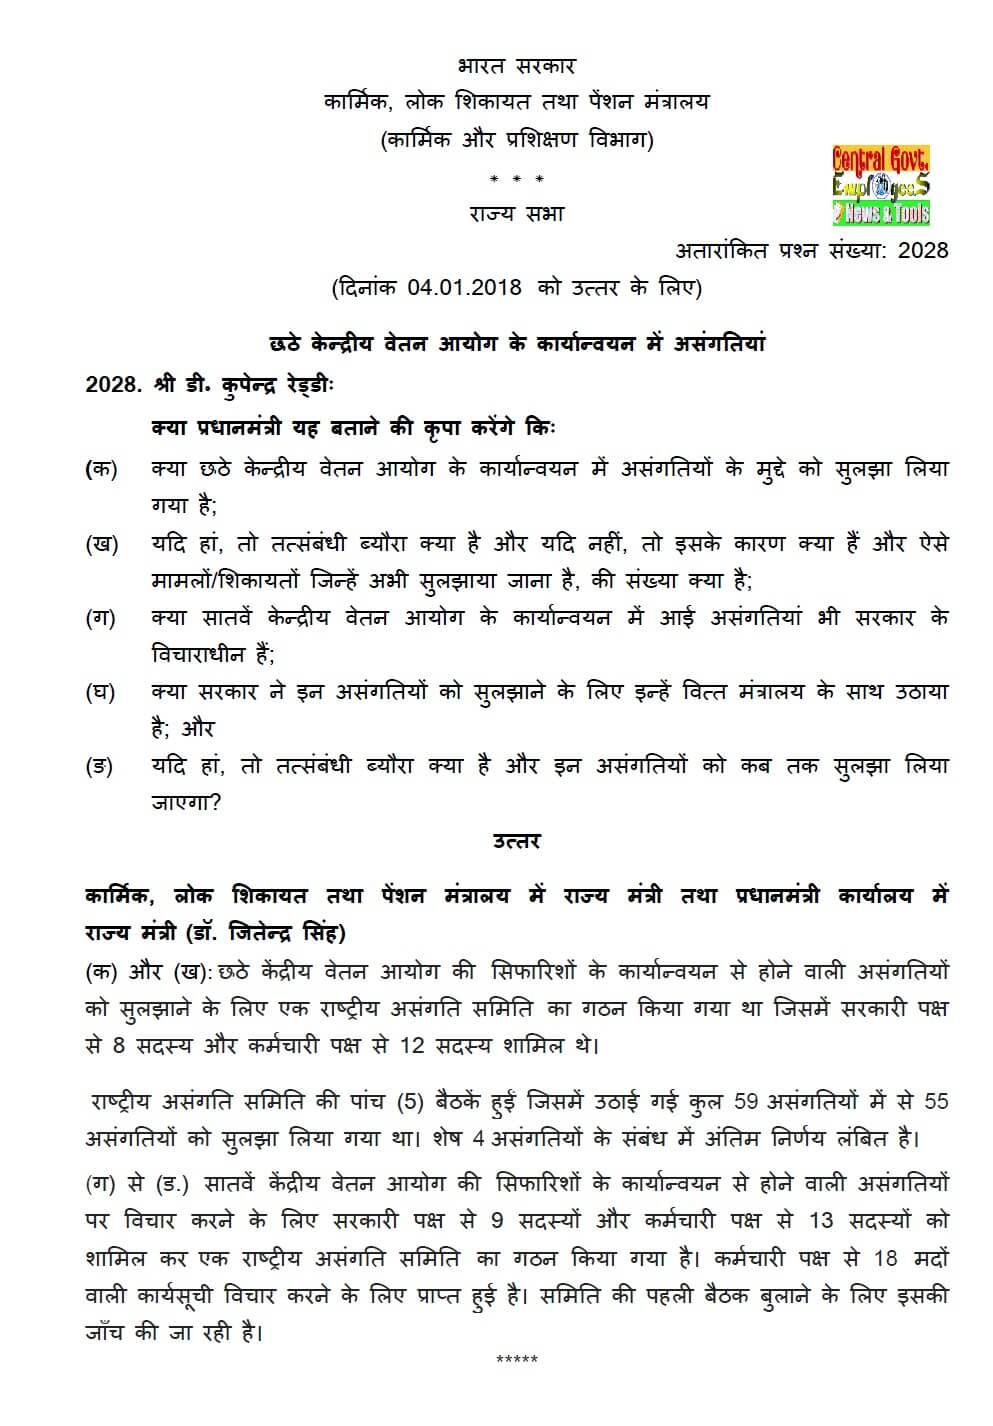 6thcpc-7th-cpc-anomalies-statement-in-hindi